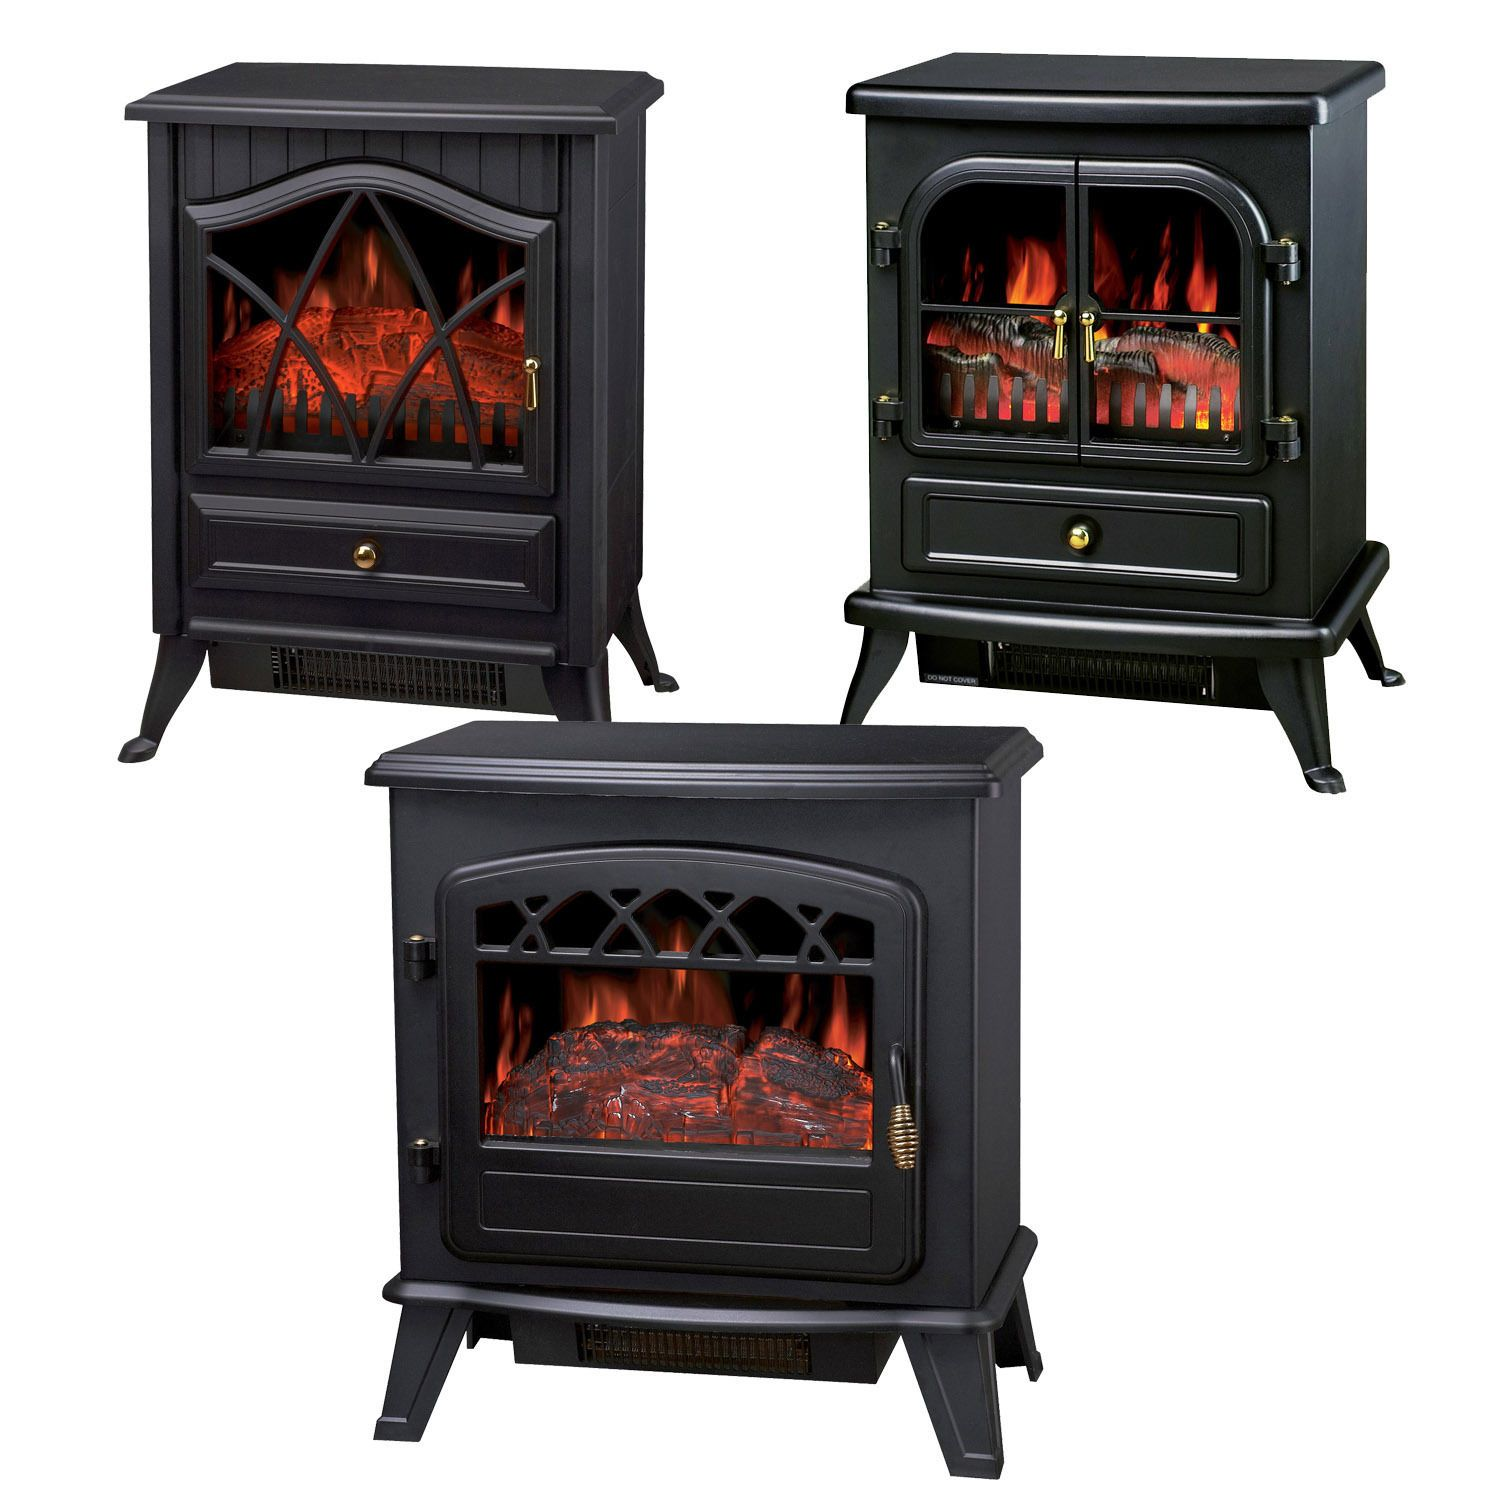 W log burning flame effect stove electric fire heater fireplace